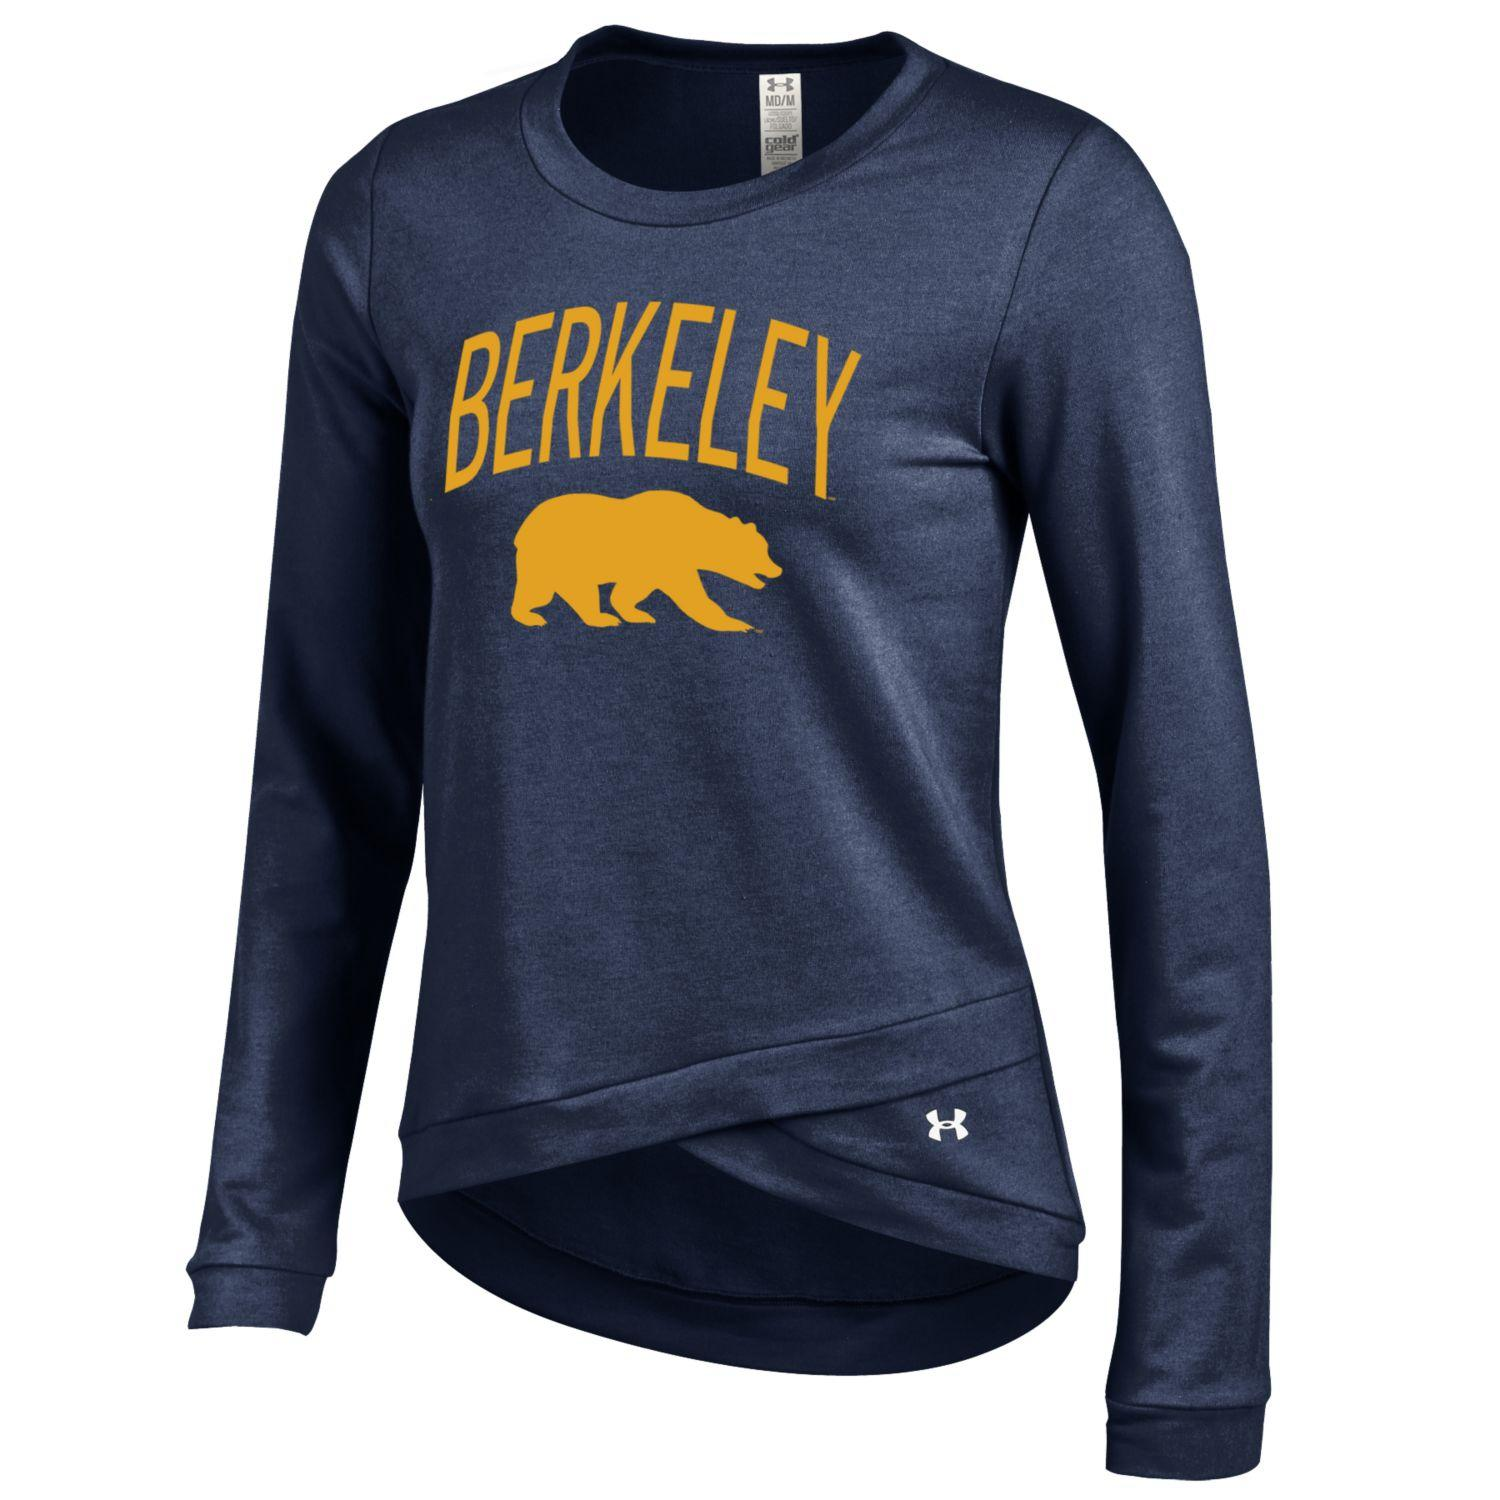 University of California Berkeley Under Armour Women's Cross Over Crew Bear